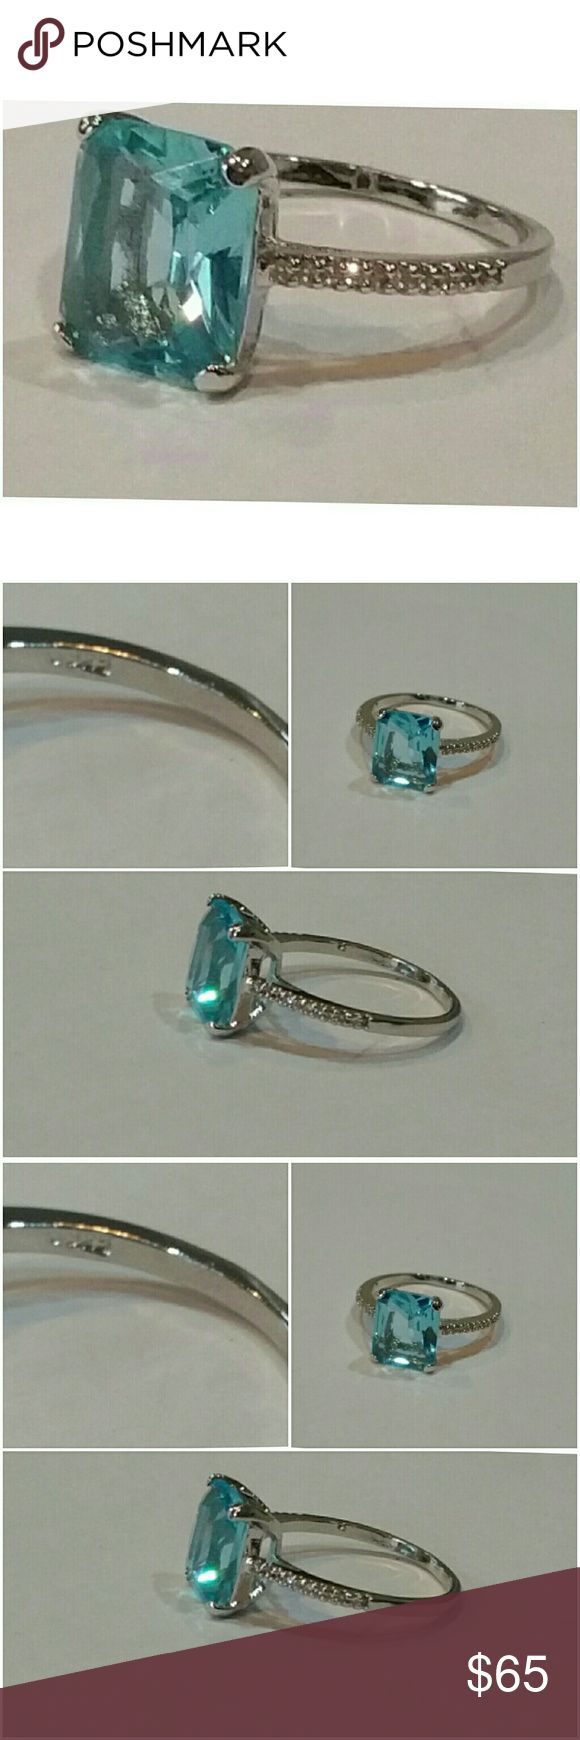 Genuine Aqua Marine and White Sapphire Ring Sz 10 Finding a 6ct Aquamarine in such clarity and color is hard to do. Aquamarine is one of 4 previous gems. Diamond, Sapphire and Ruby are the other 3. This stone enhances the wearers courage and intuition. Amongst other things. Set in 925 stamped Solid Sterling Silver. Tiny sapphires sparkle on each side of the band.  Please see all pictures for details. Brand New. Never Worn. Wholesale Price. Msrp 745.00 Jewelry Rings